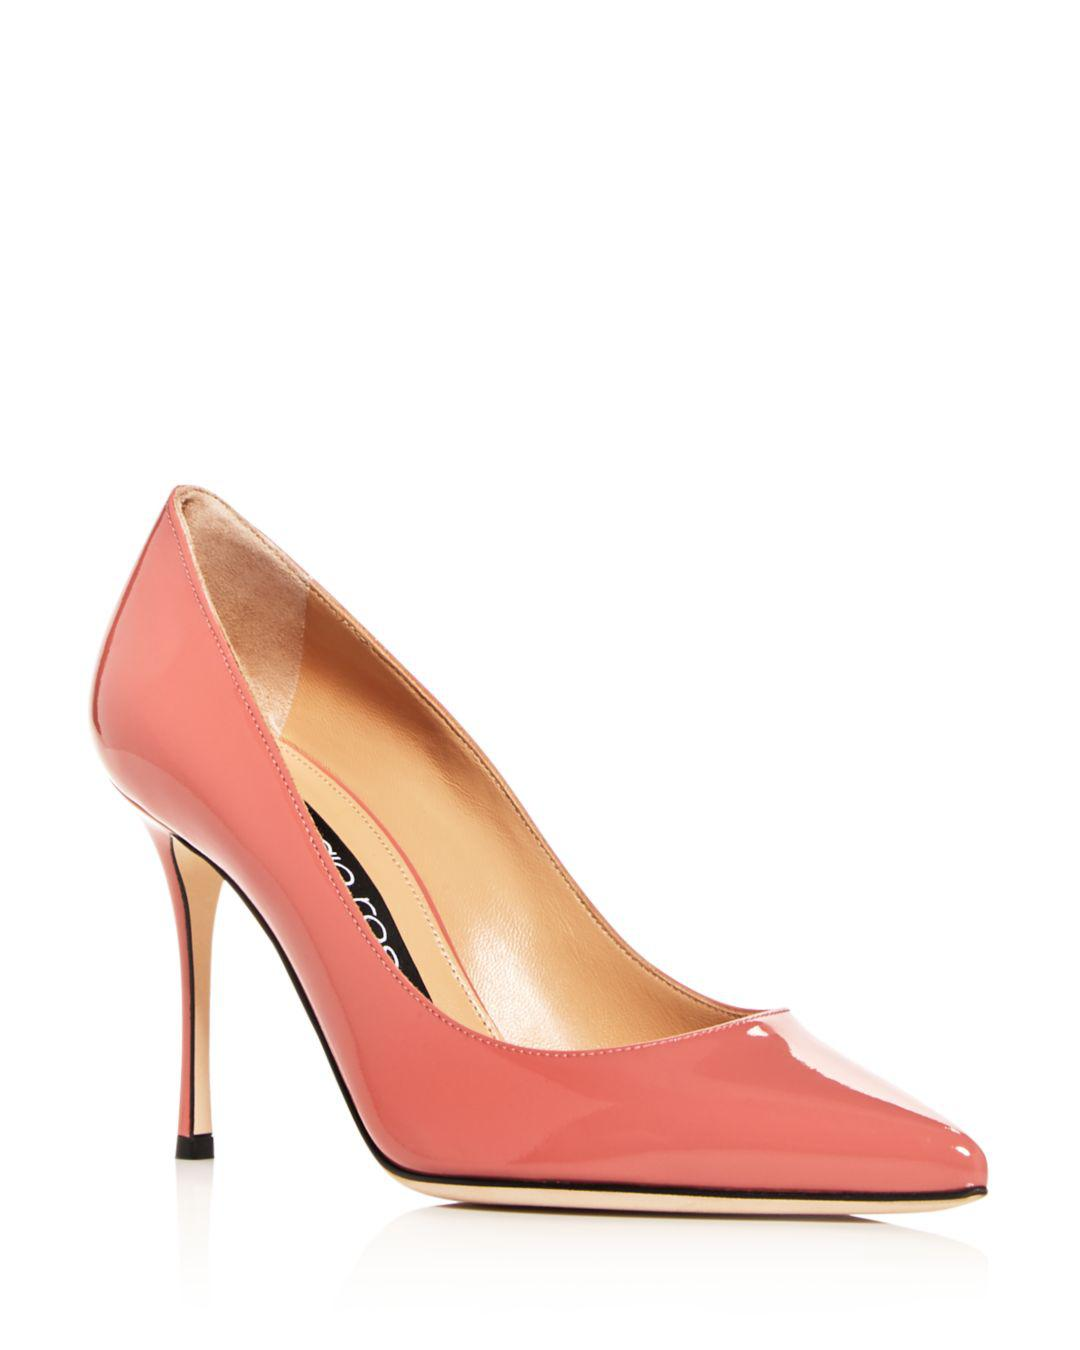 1b3d777a4bf Lyst - Sergio Rossi Women s Godiva Pointed-toe Pumps in Pink